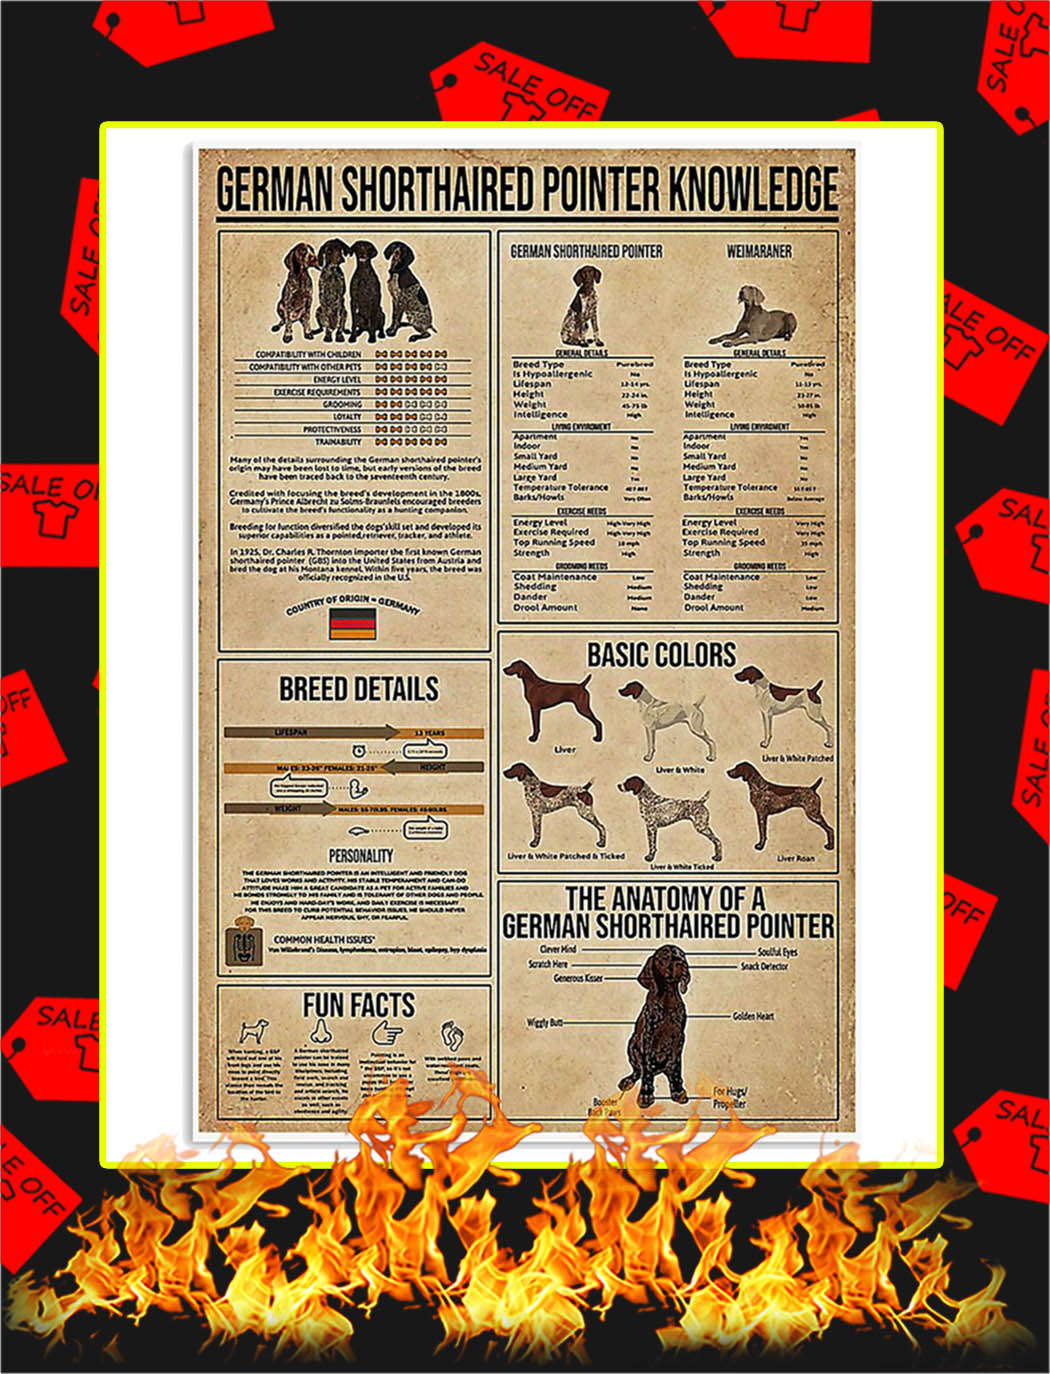 German Shorthaired Pointer Knowledge Poster - 24x36